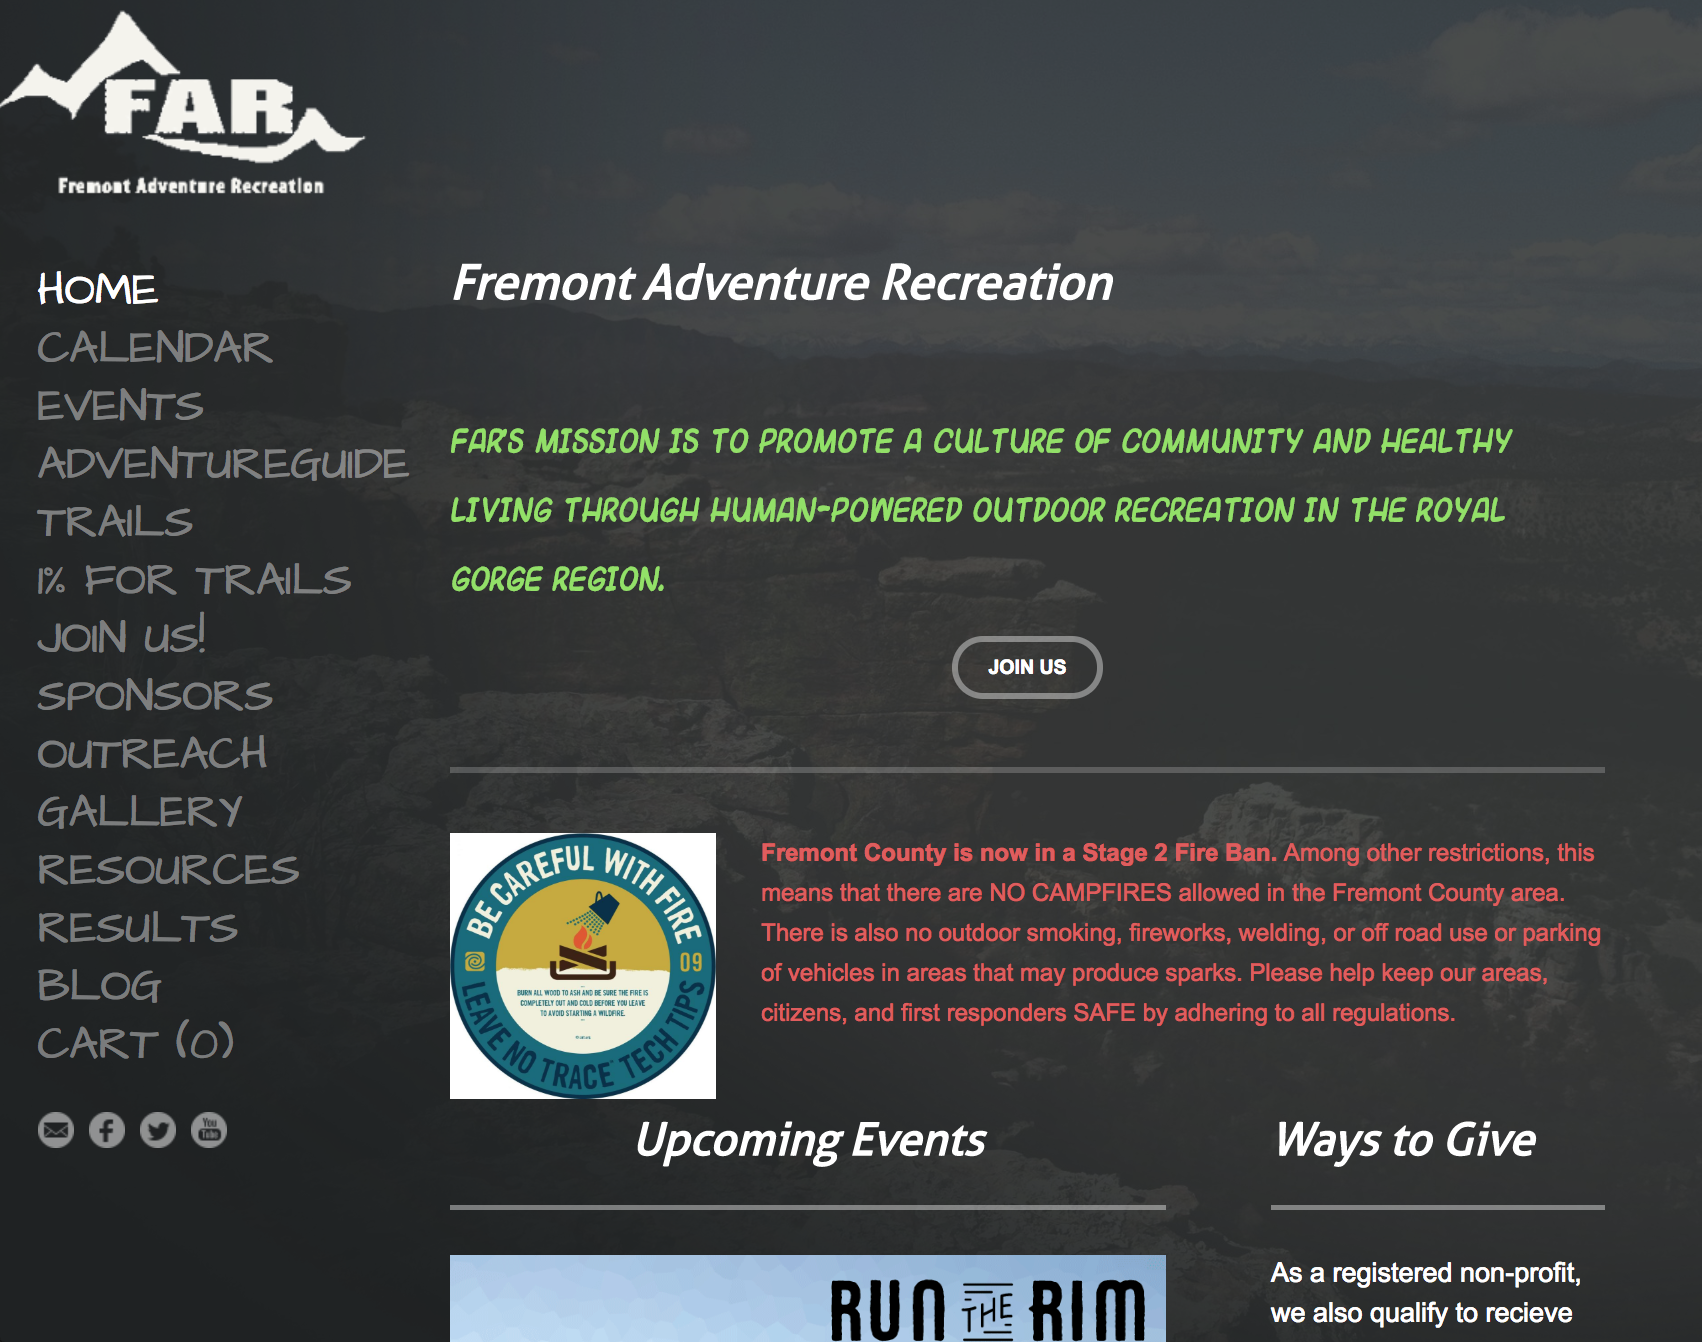 Fremont Adventure Recreation